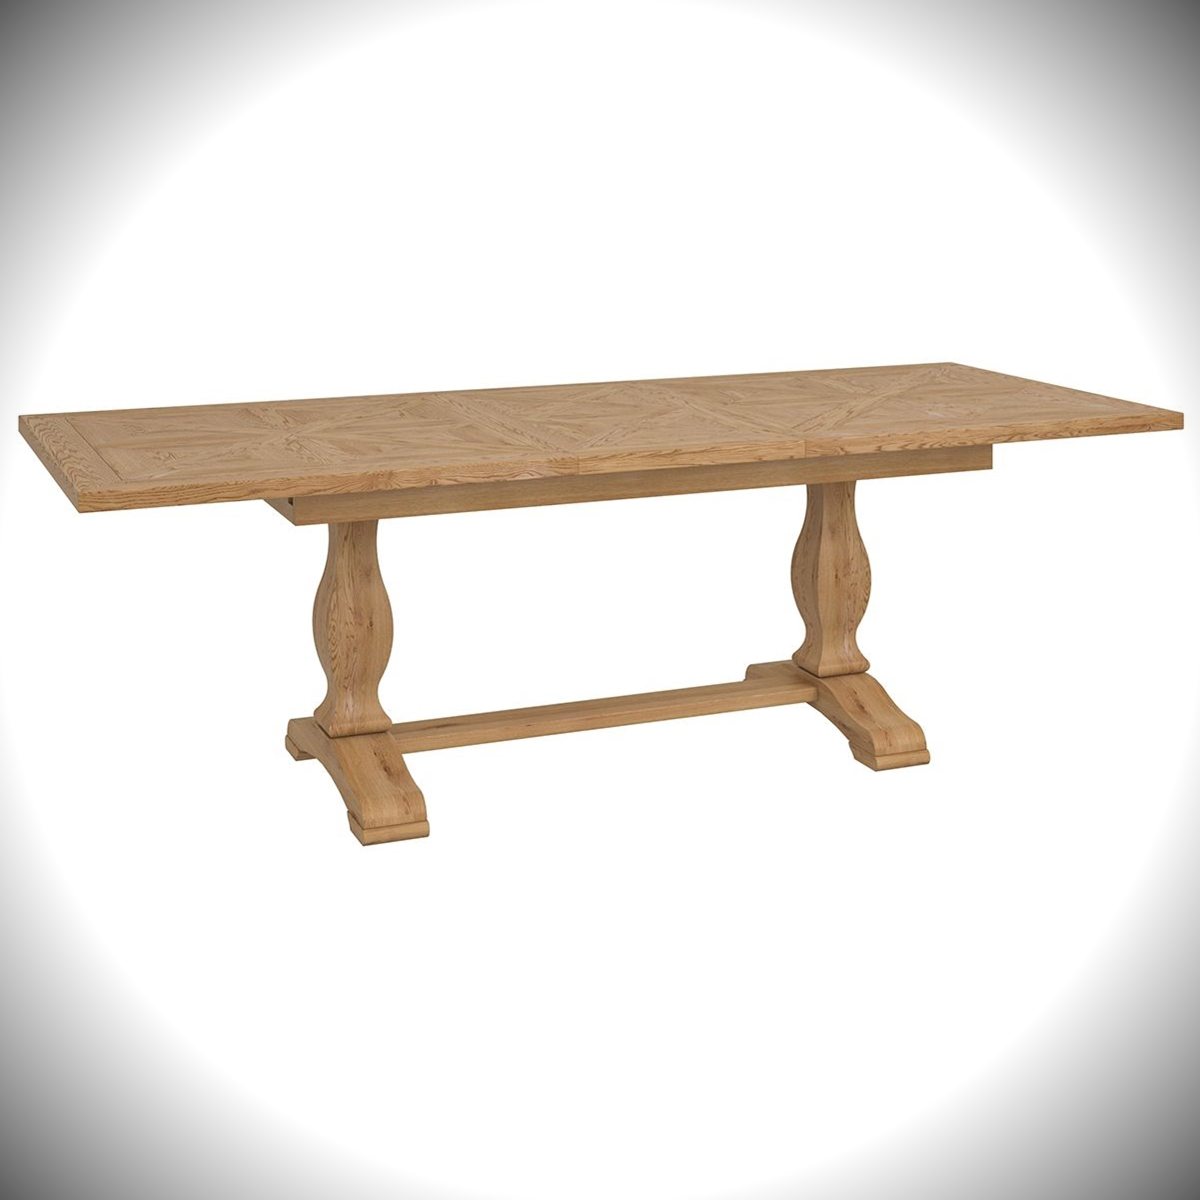 Belgrave 6-8 Extension Table - Rustic Oak